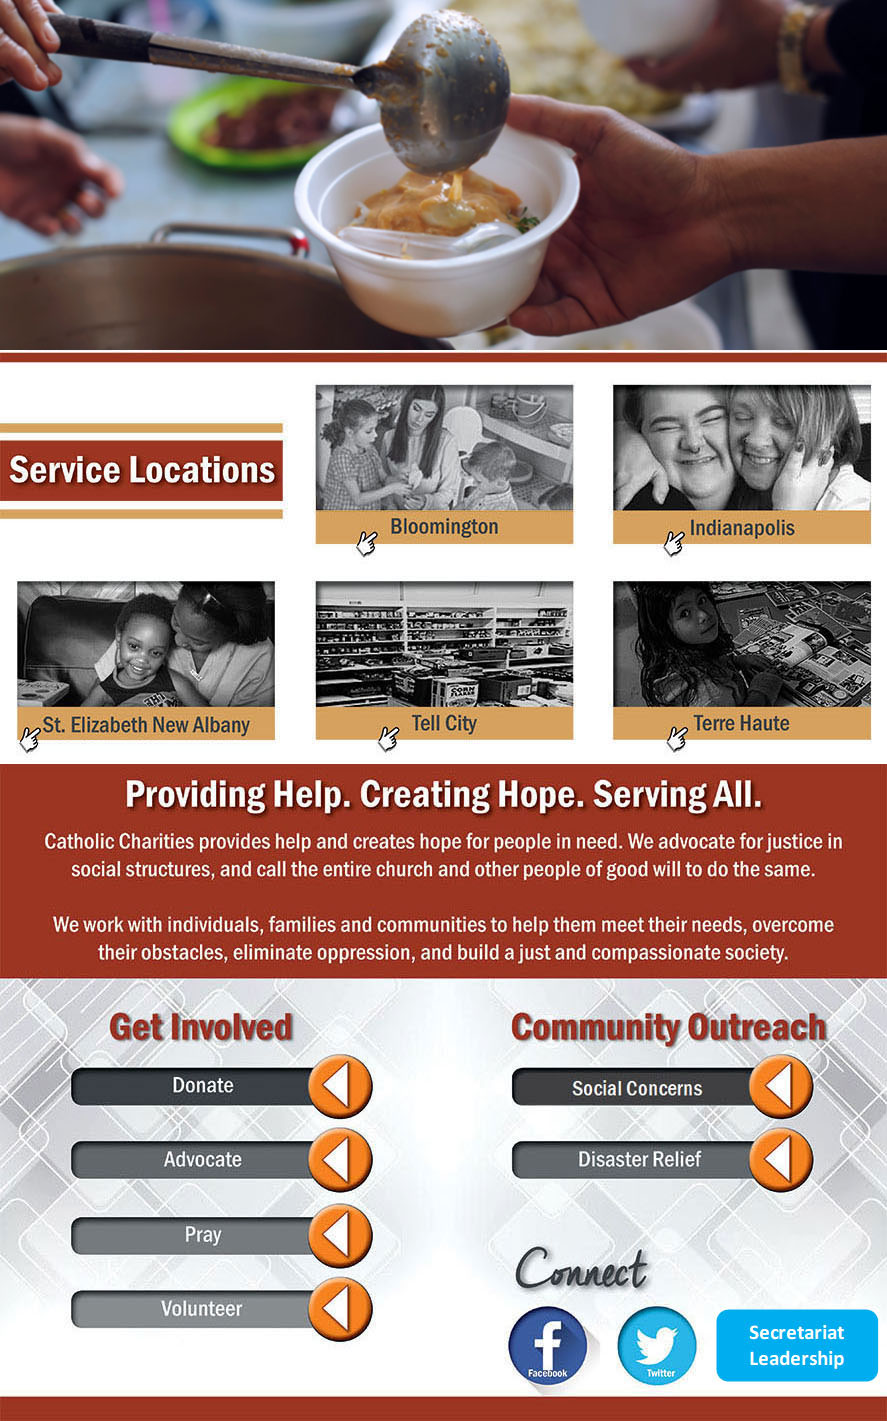 Catholic Charities: Providing Help. Creating Hope. Serving All.